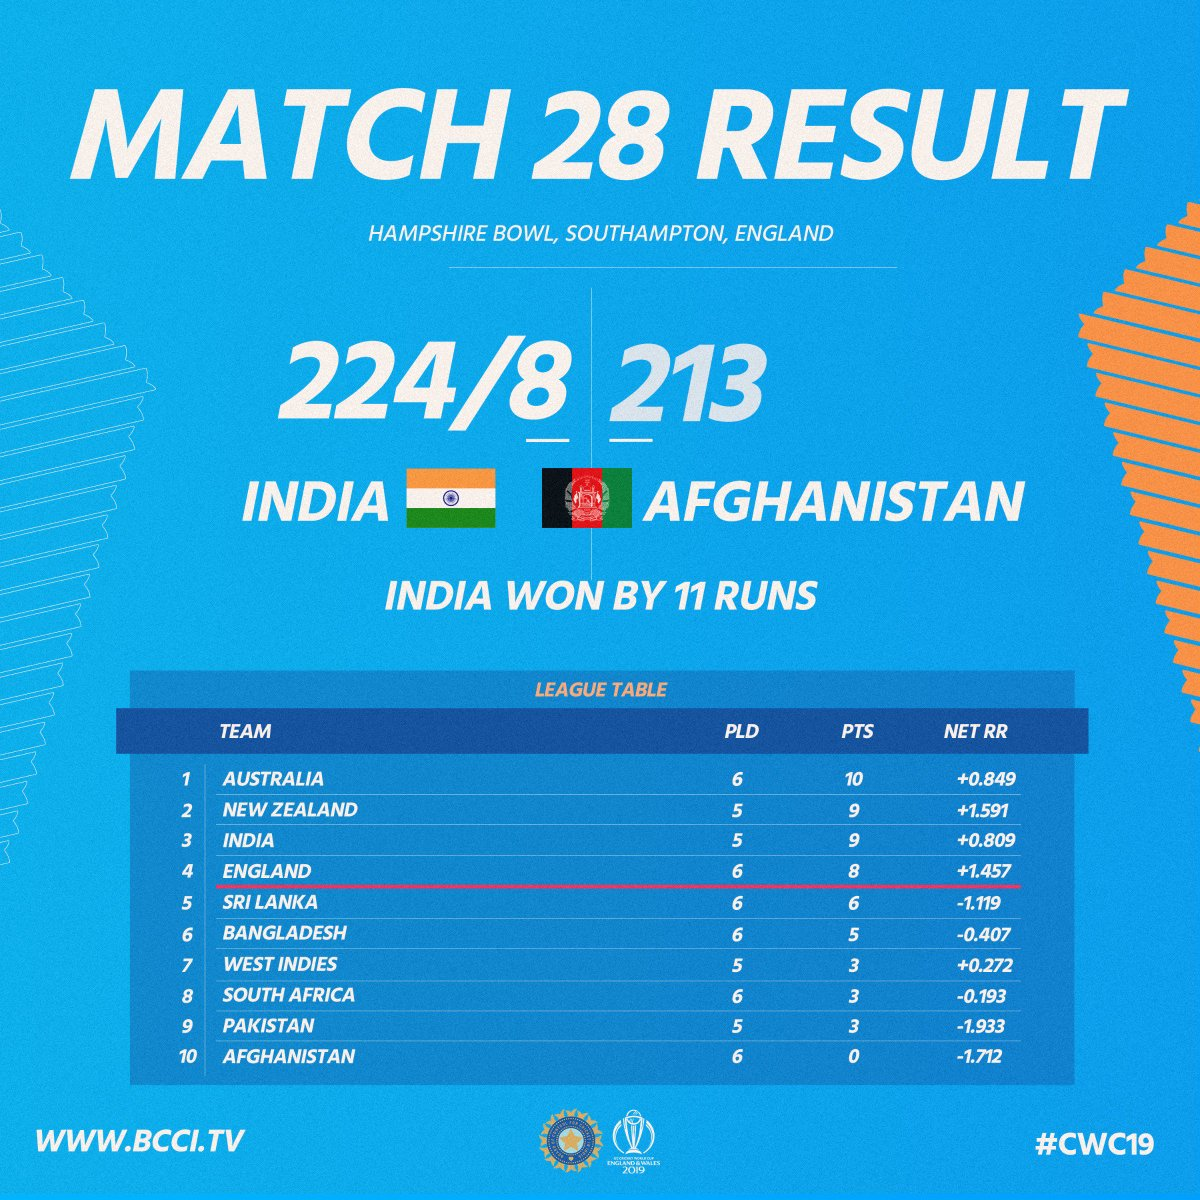 And, that's how we sealed the game against Afghanistan & that's how the standings look post the game #TeamIndia #INDvAFG #CWC19 🇮🇳🇮🇳😎